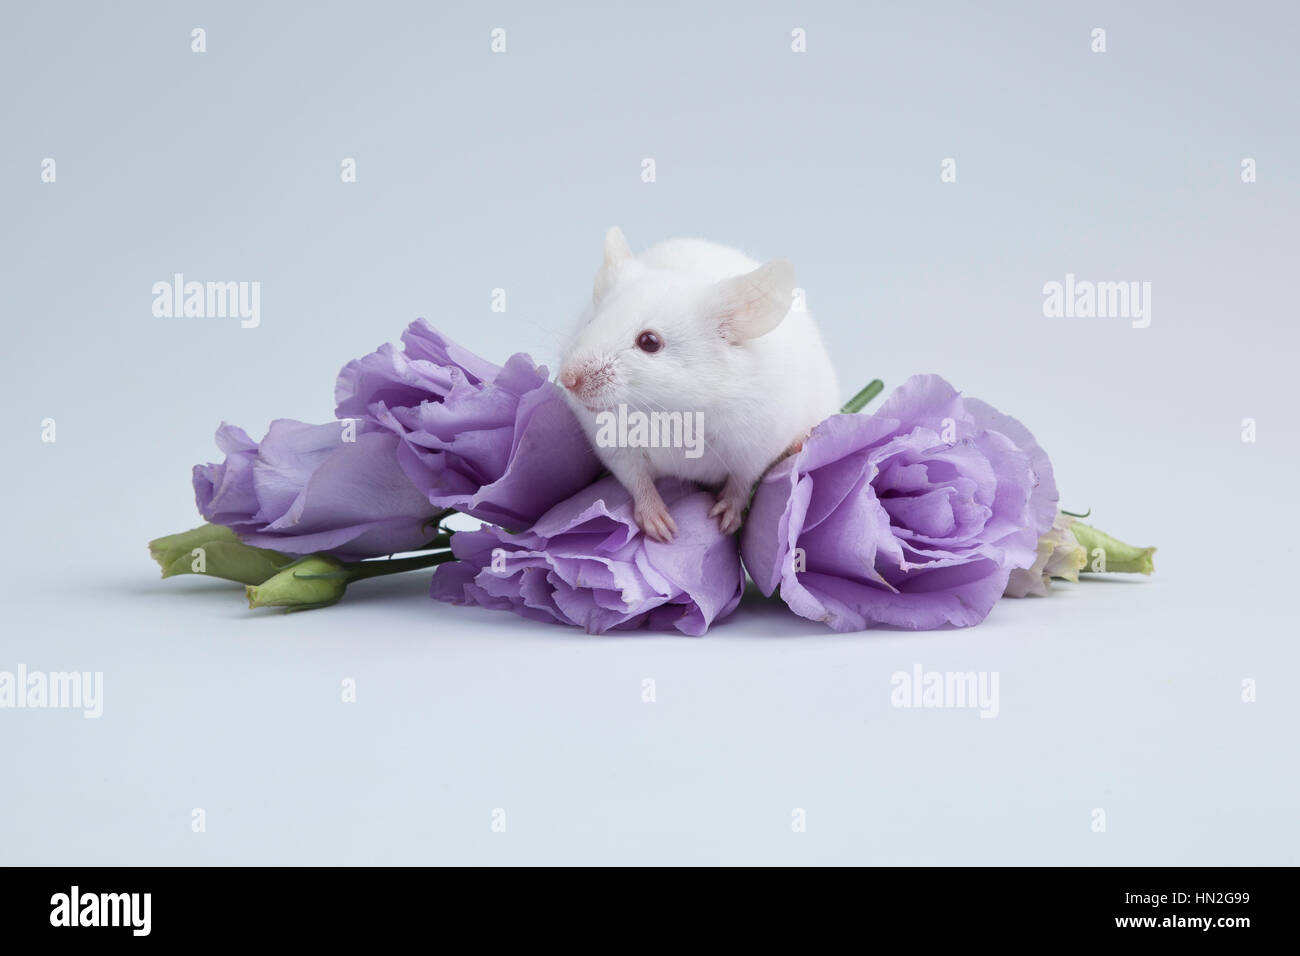 Albino mouse with puple flowers. - Stock Image